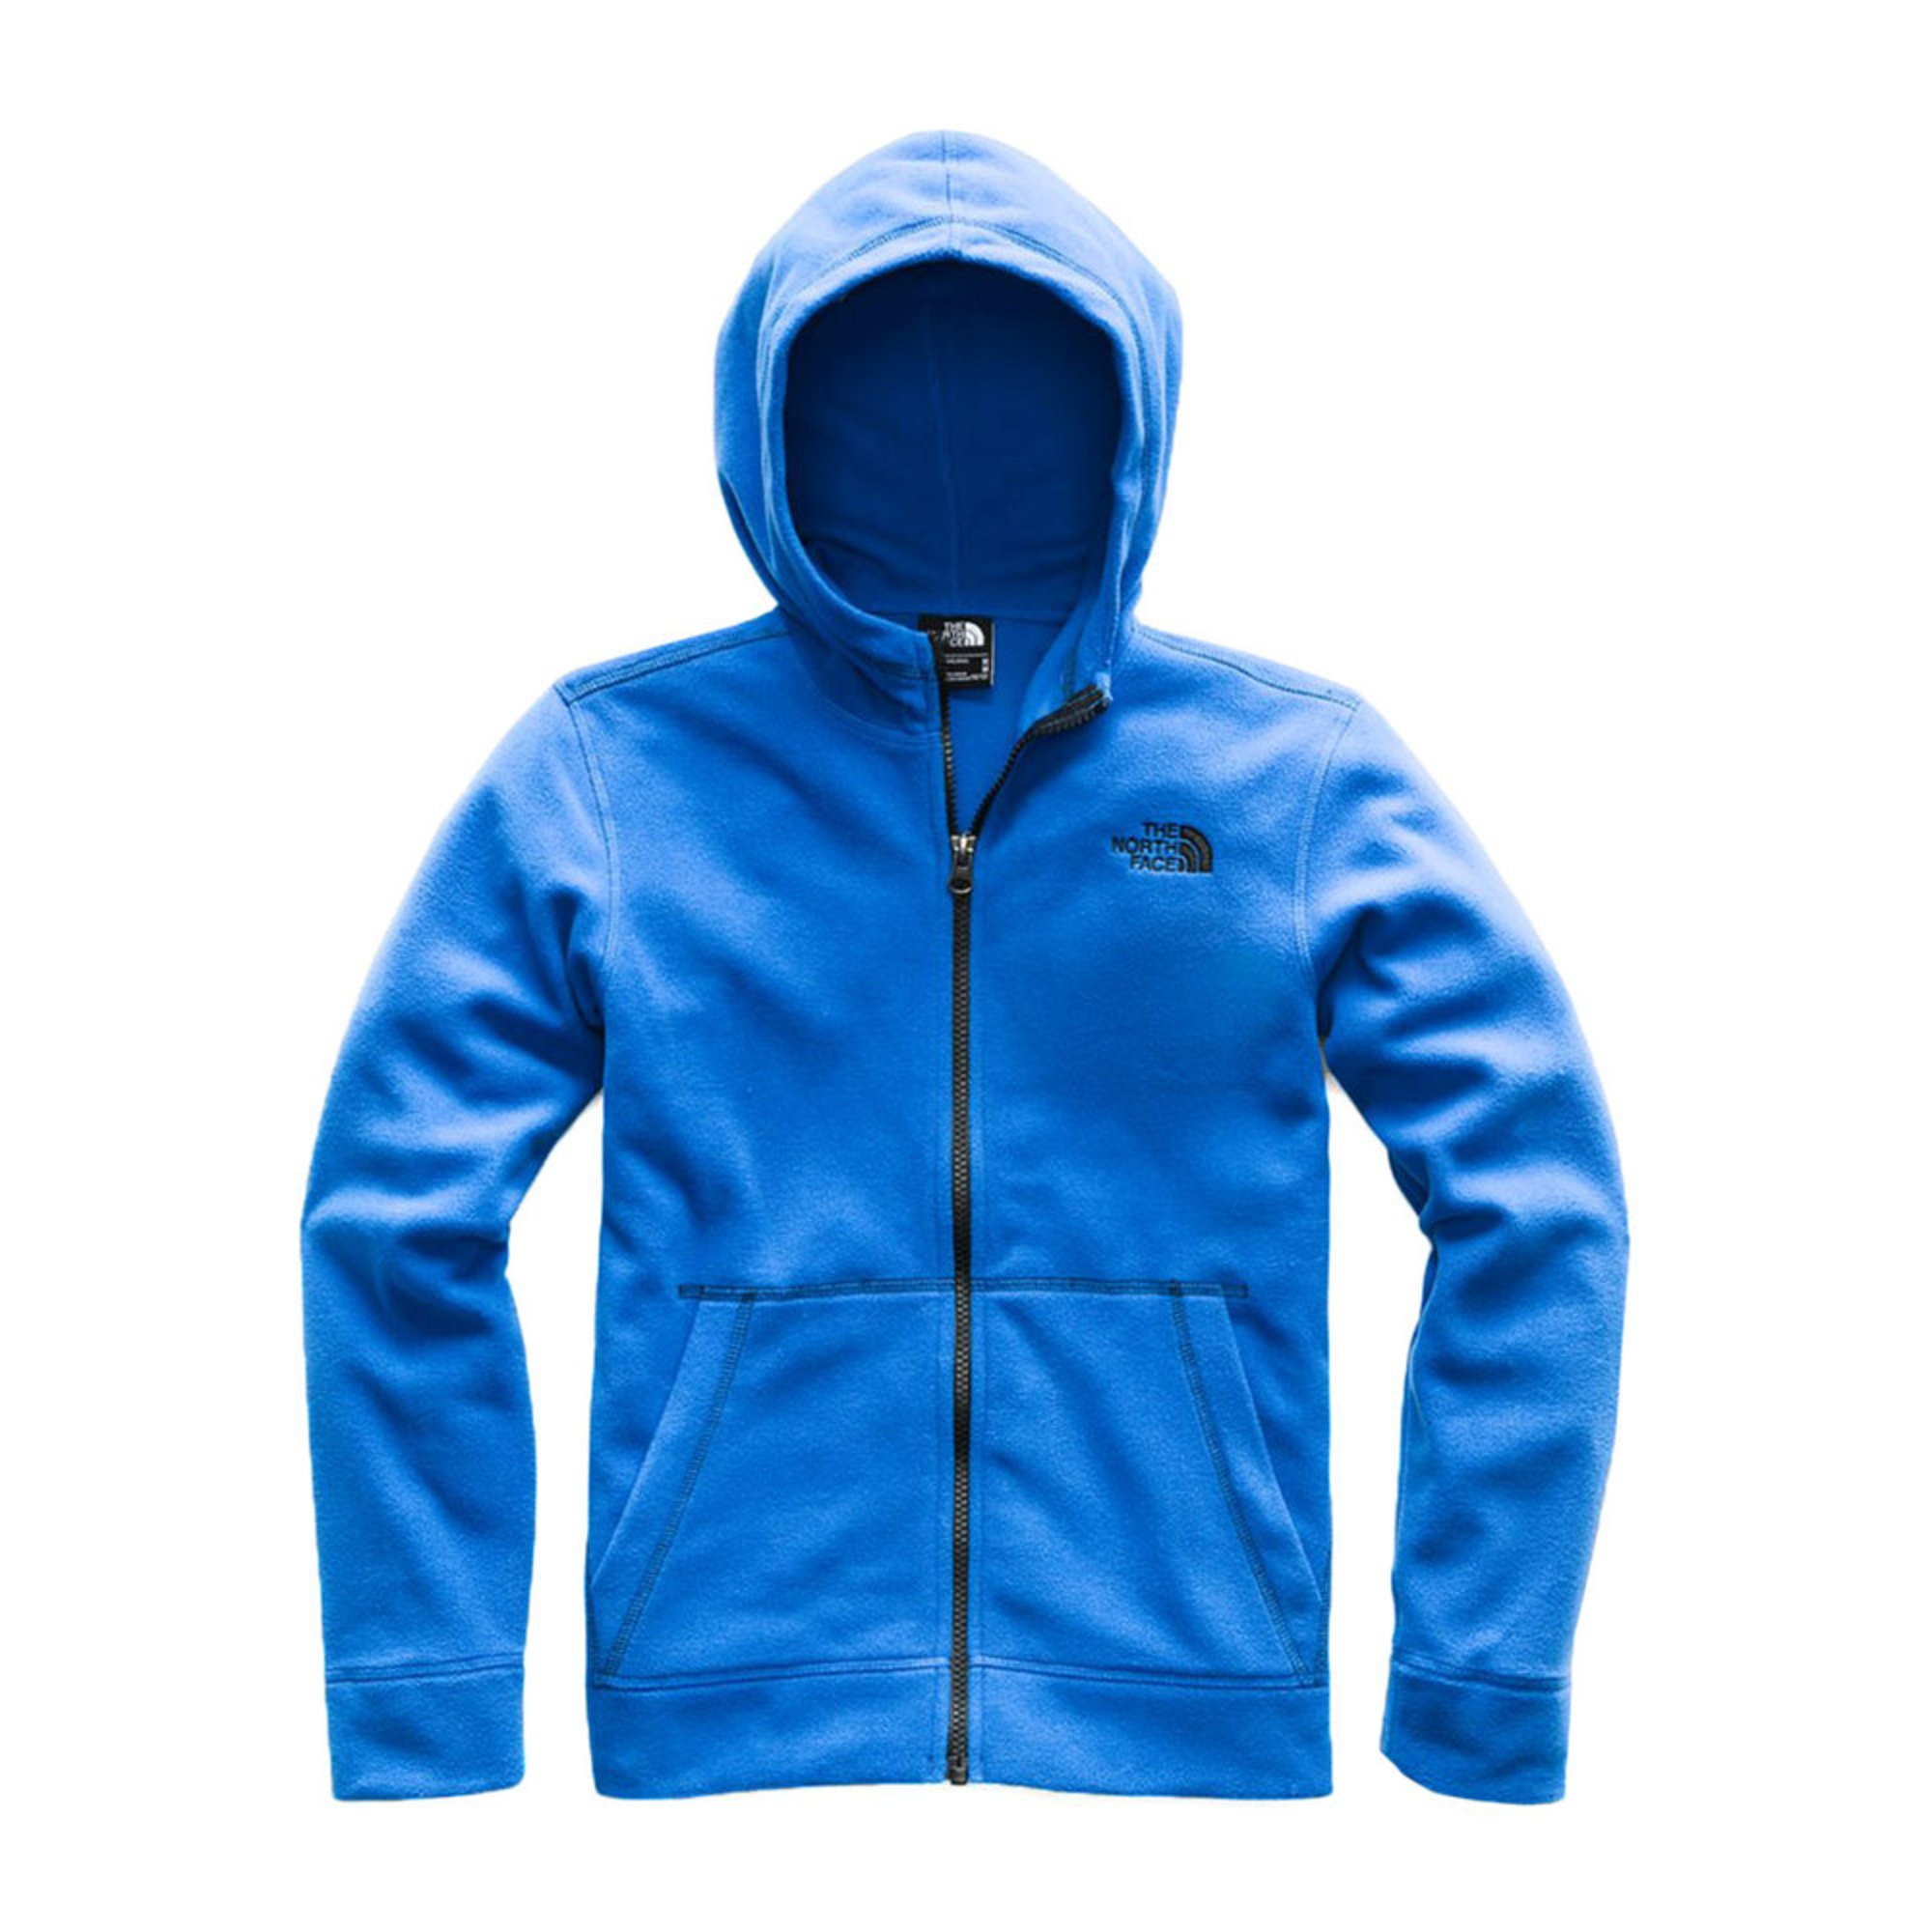 51e8812069d The North Face. The North Face Big Boys  Glacier Full Zip Hoodie